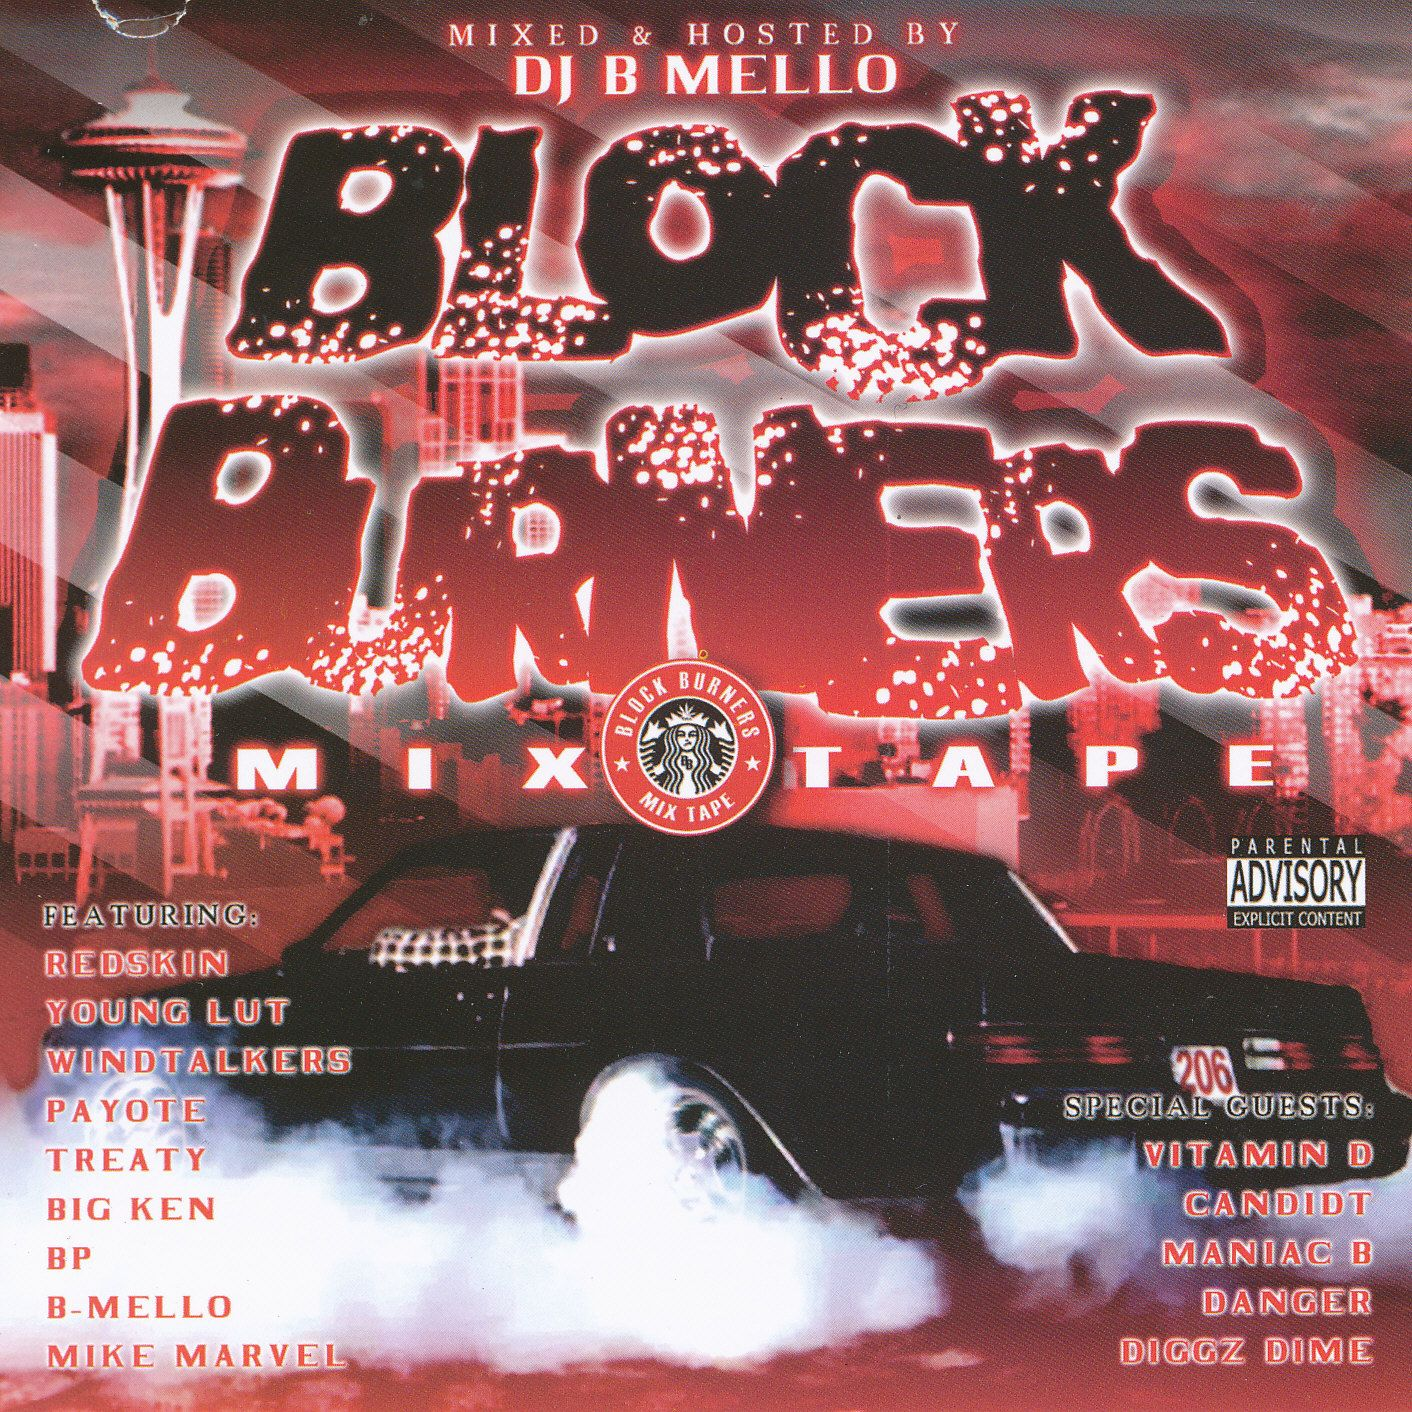 Block Burners Mixtape Hosted By DJ B Mello | PacNW Covers